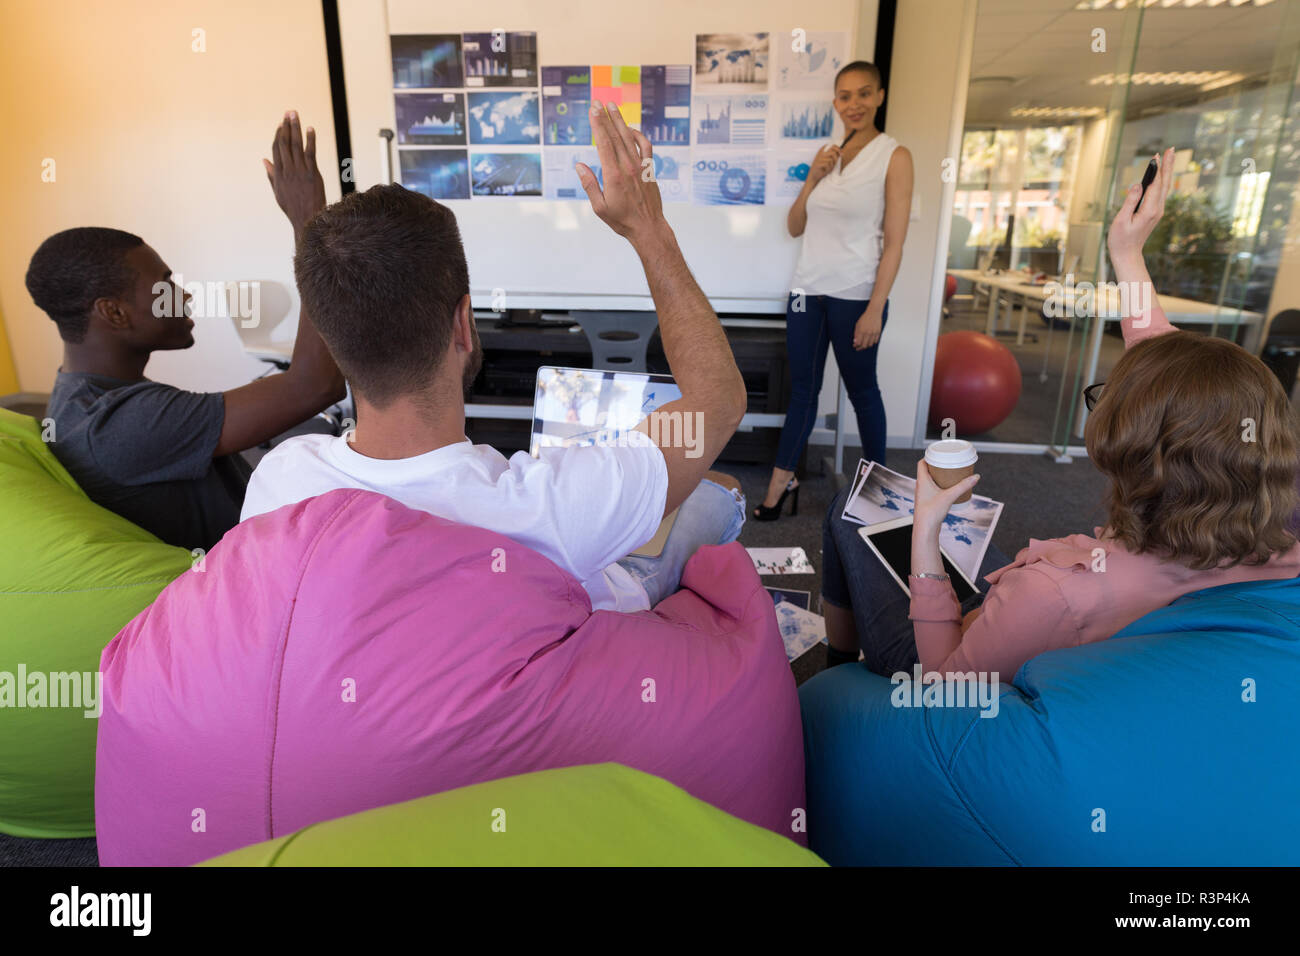 Business executives hand raised while sitting on bean bag during meeting - Stock Image